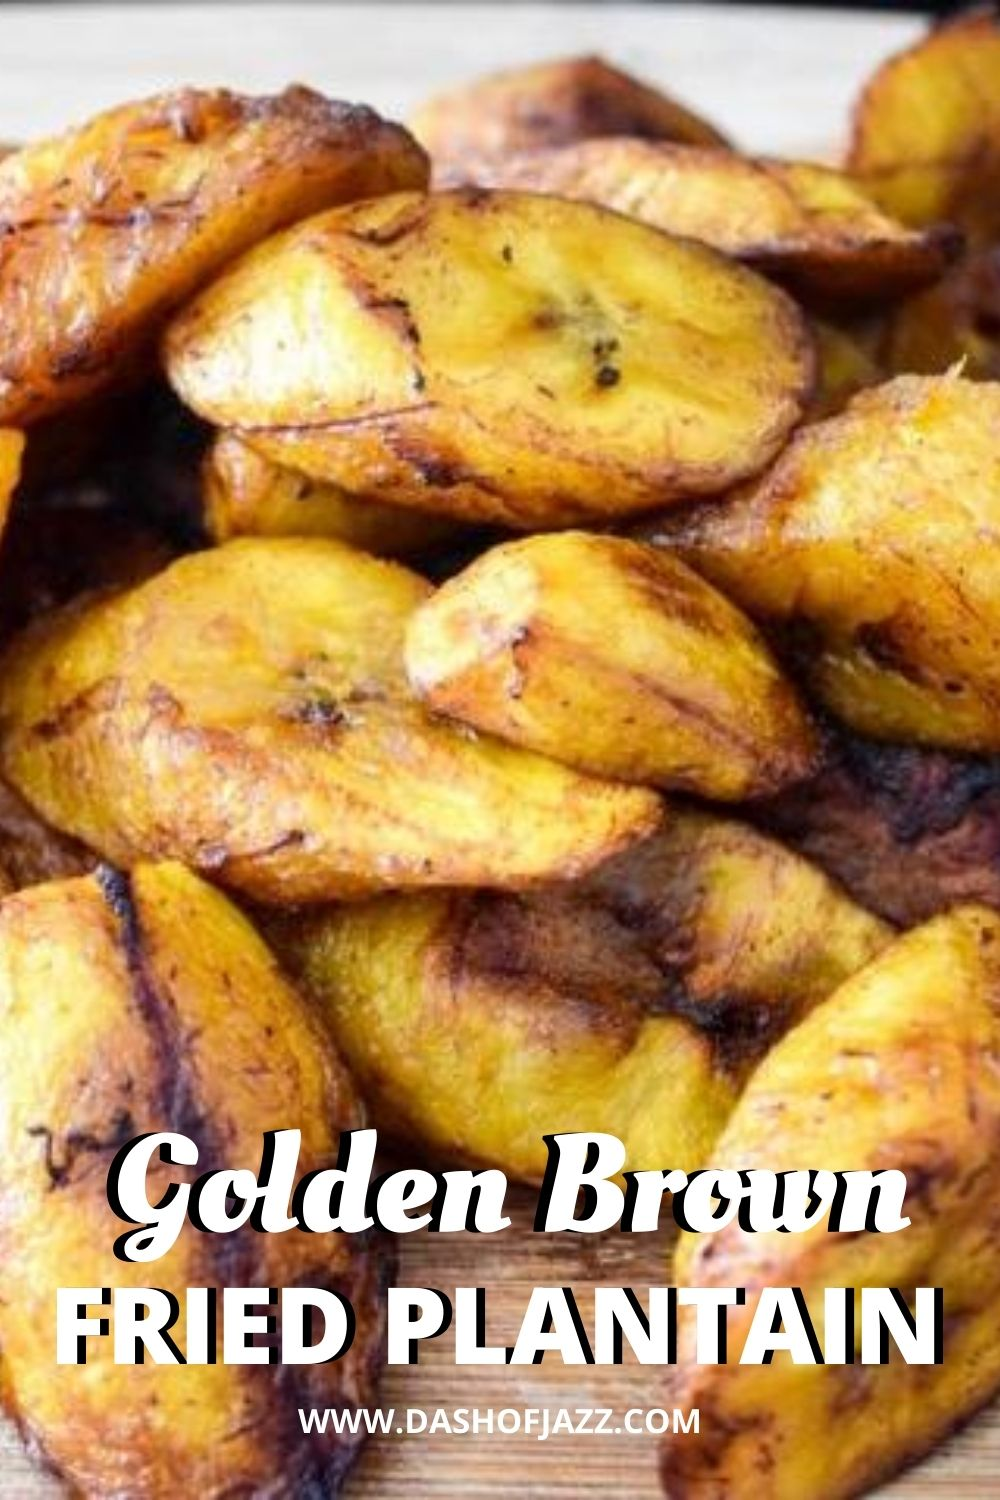 close up of fried plantain slices